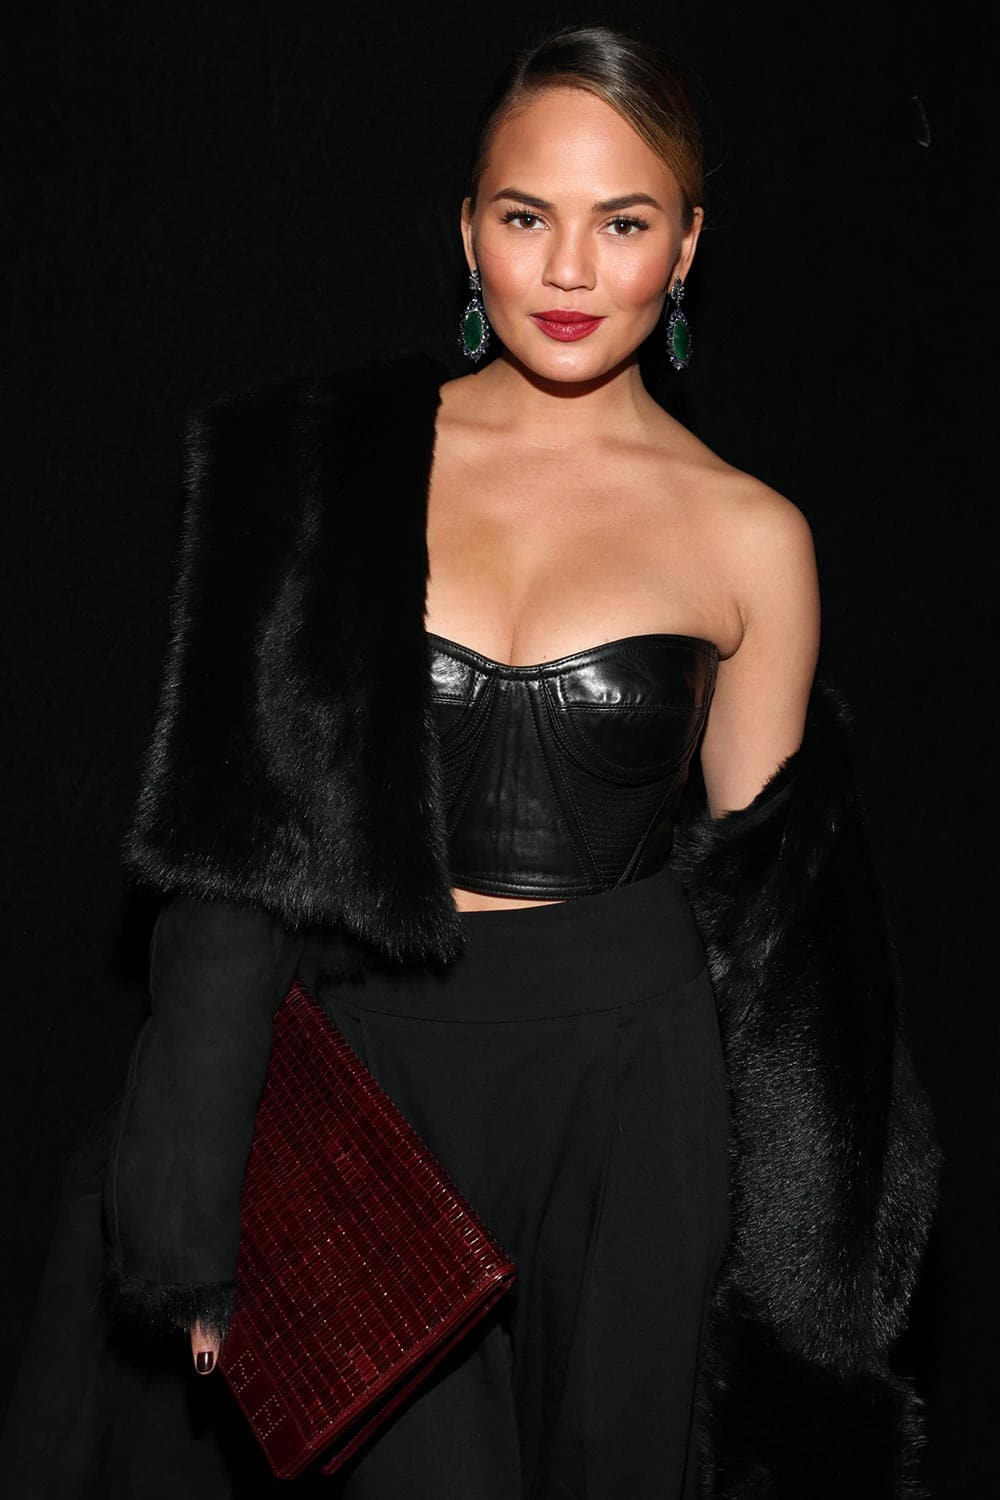 Model Chrissy Teigen attends the DKNY 30th Anniversary fashion show during Mercedes-Benz Fashion Week.